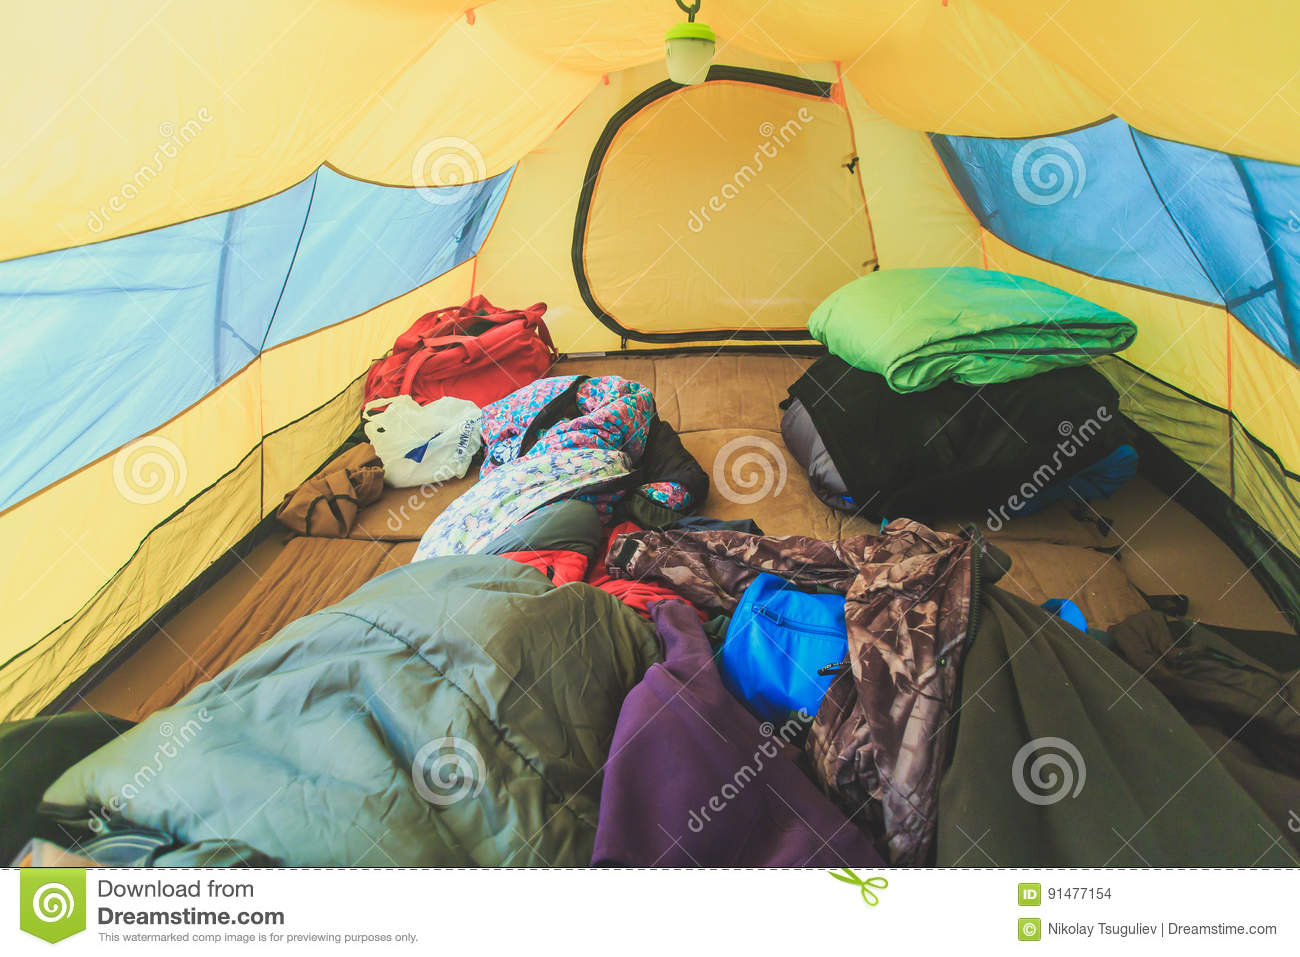 An inside view of tent, process of camping in fall or spring forest field, setting a tent covered